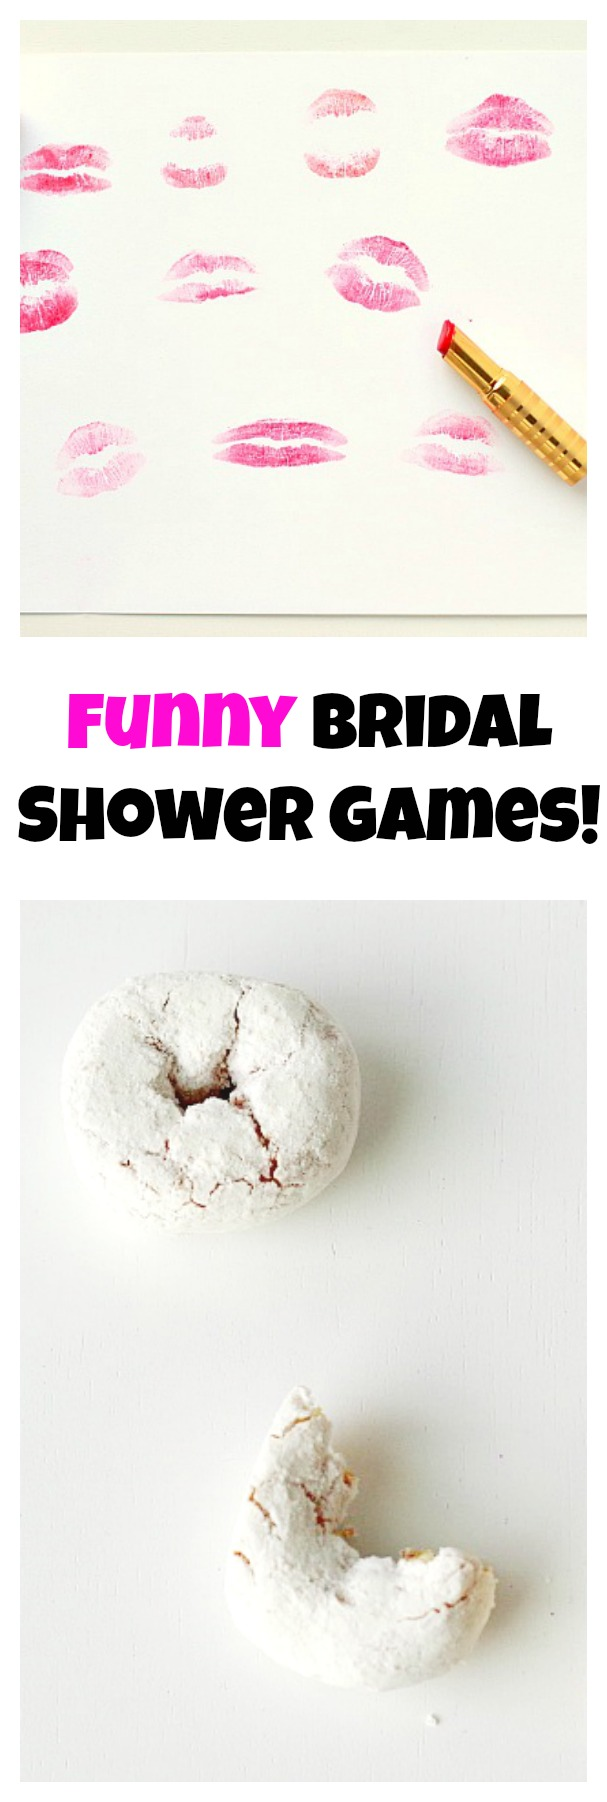 Funny Bridal Shower Games